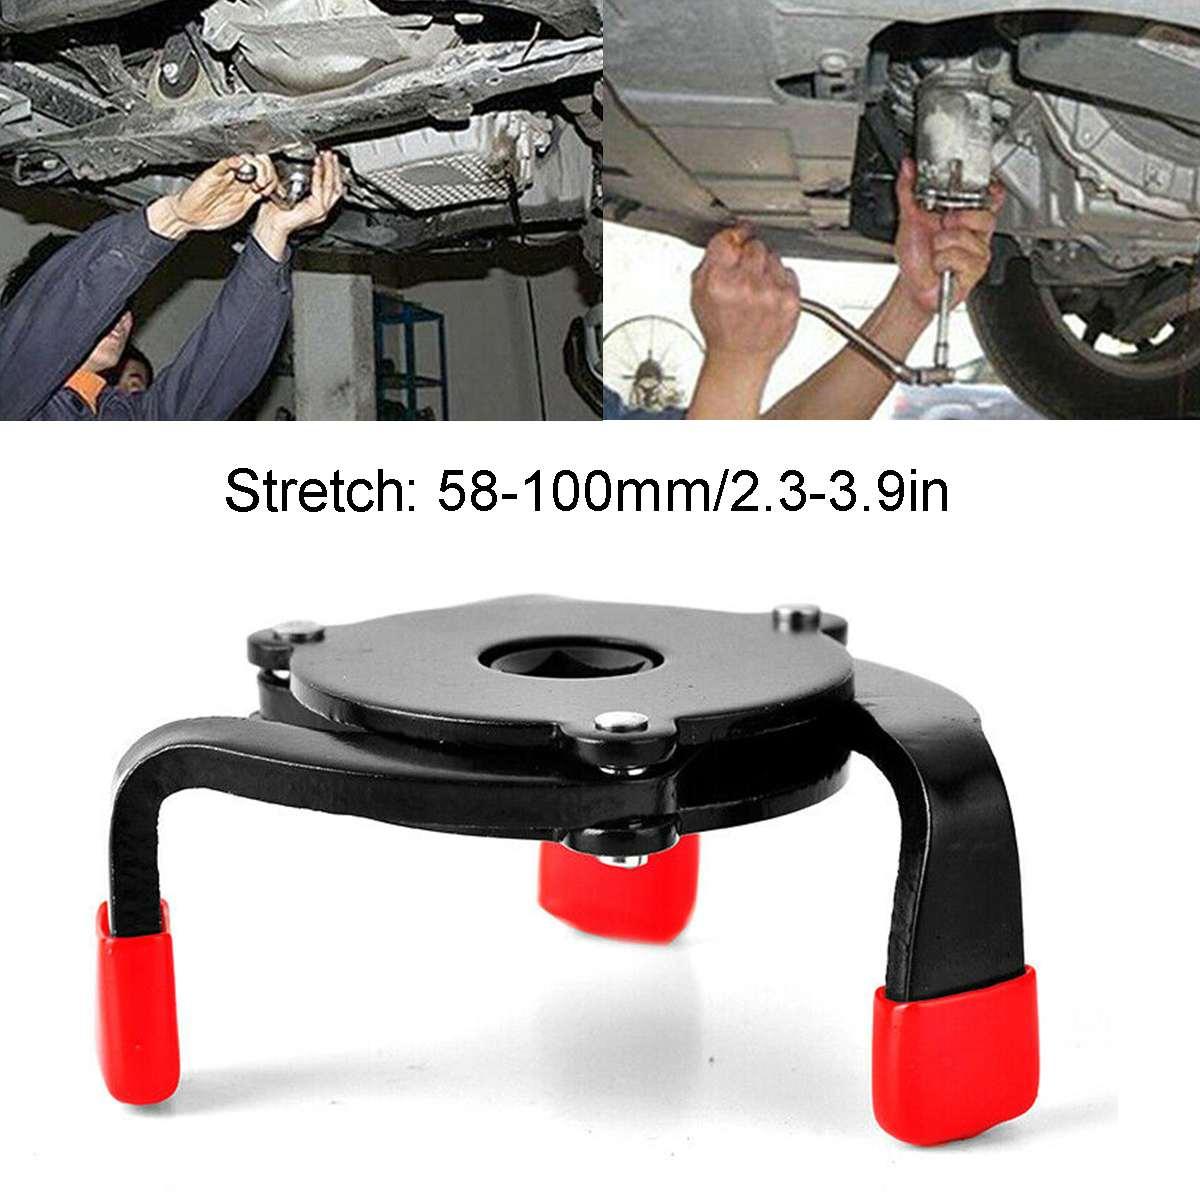 3 Jaw Universal Oil Filter Wrench With Anti-Slip Edging Oil Core Disassembly Ball Head